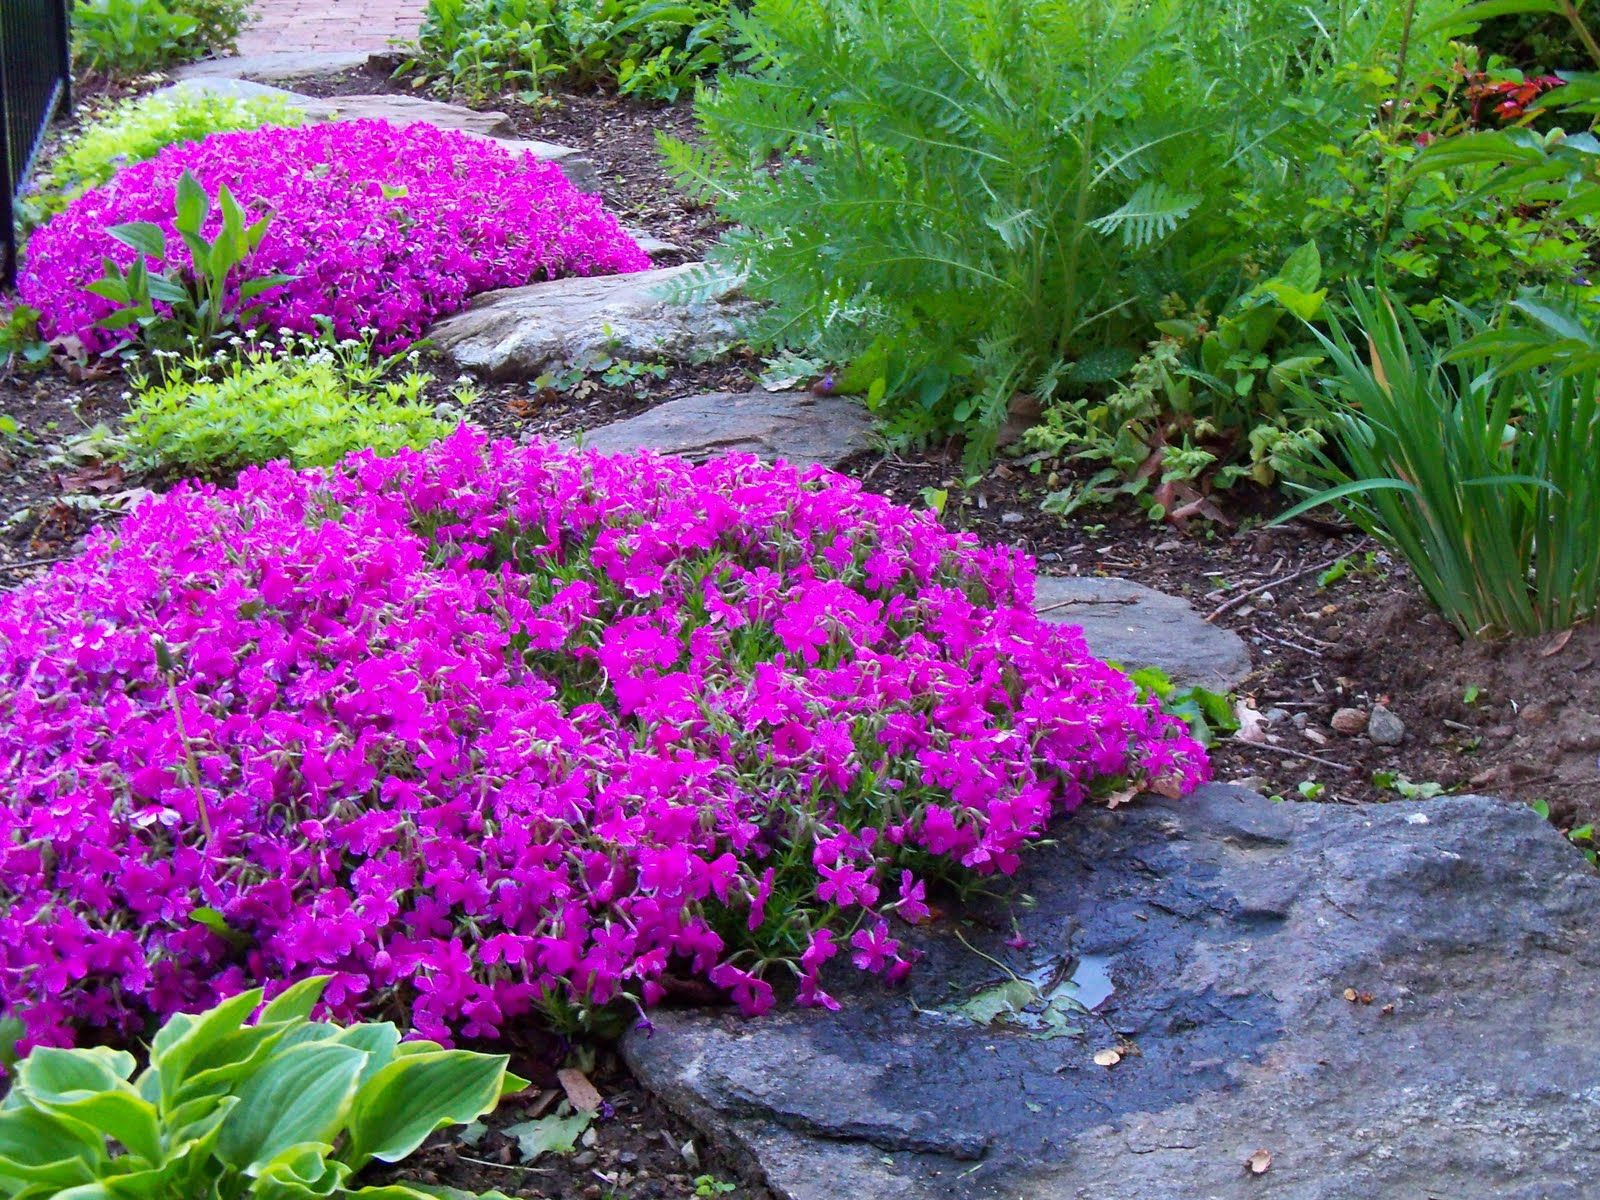 Creeping phlox ground cover mma used to grow this to fill in her flower beds flowerbeds